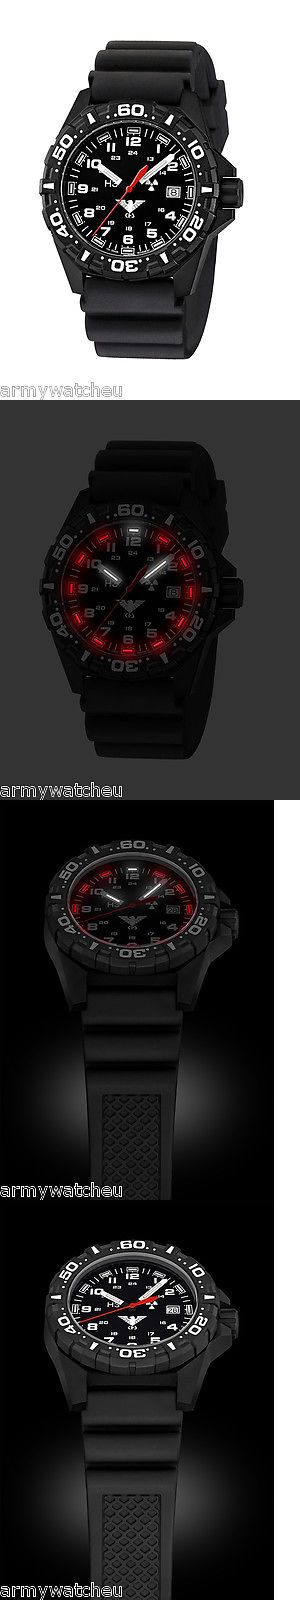 Hang Gliding and Paragliding 91561: Khs Tactical Watches Red Reaper H3 Military Field Watch Date Diver Band Black BUY IT NOW ONLY: $264.9